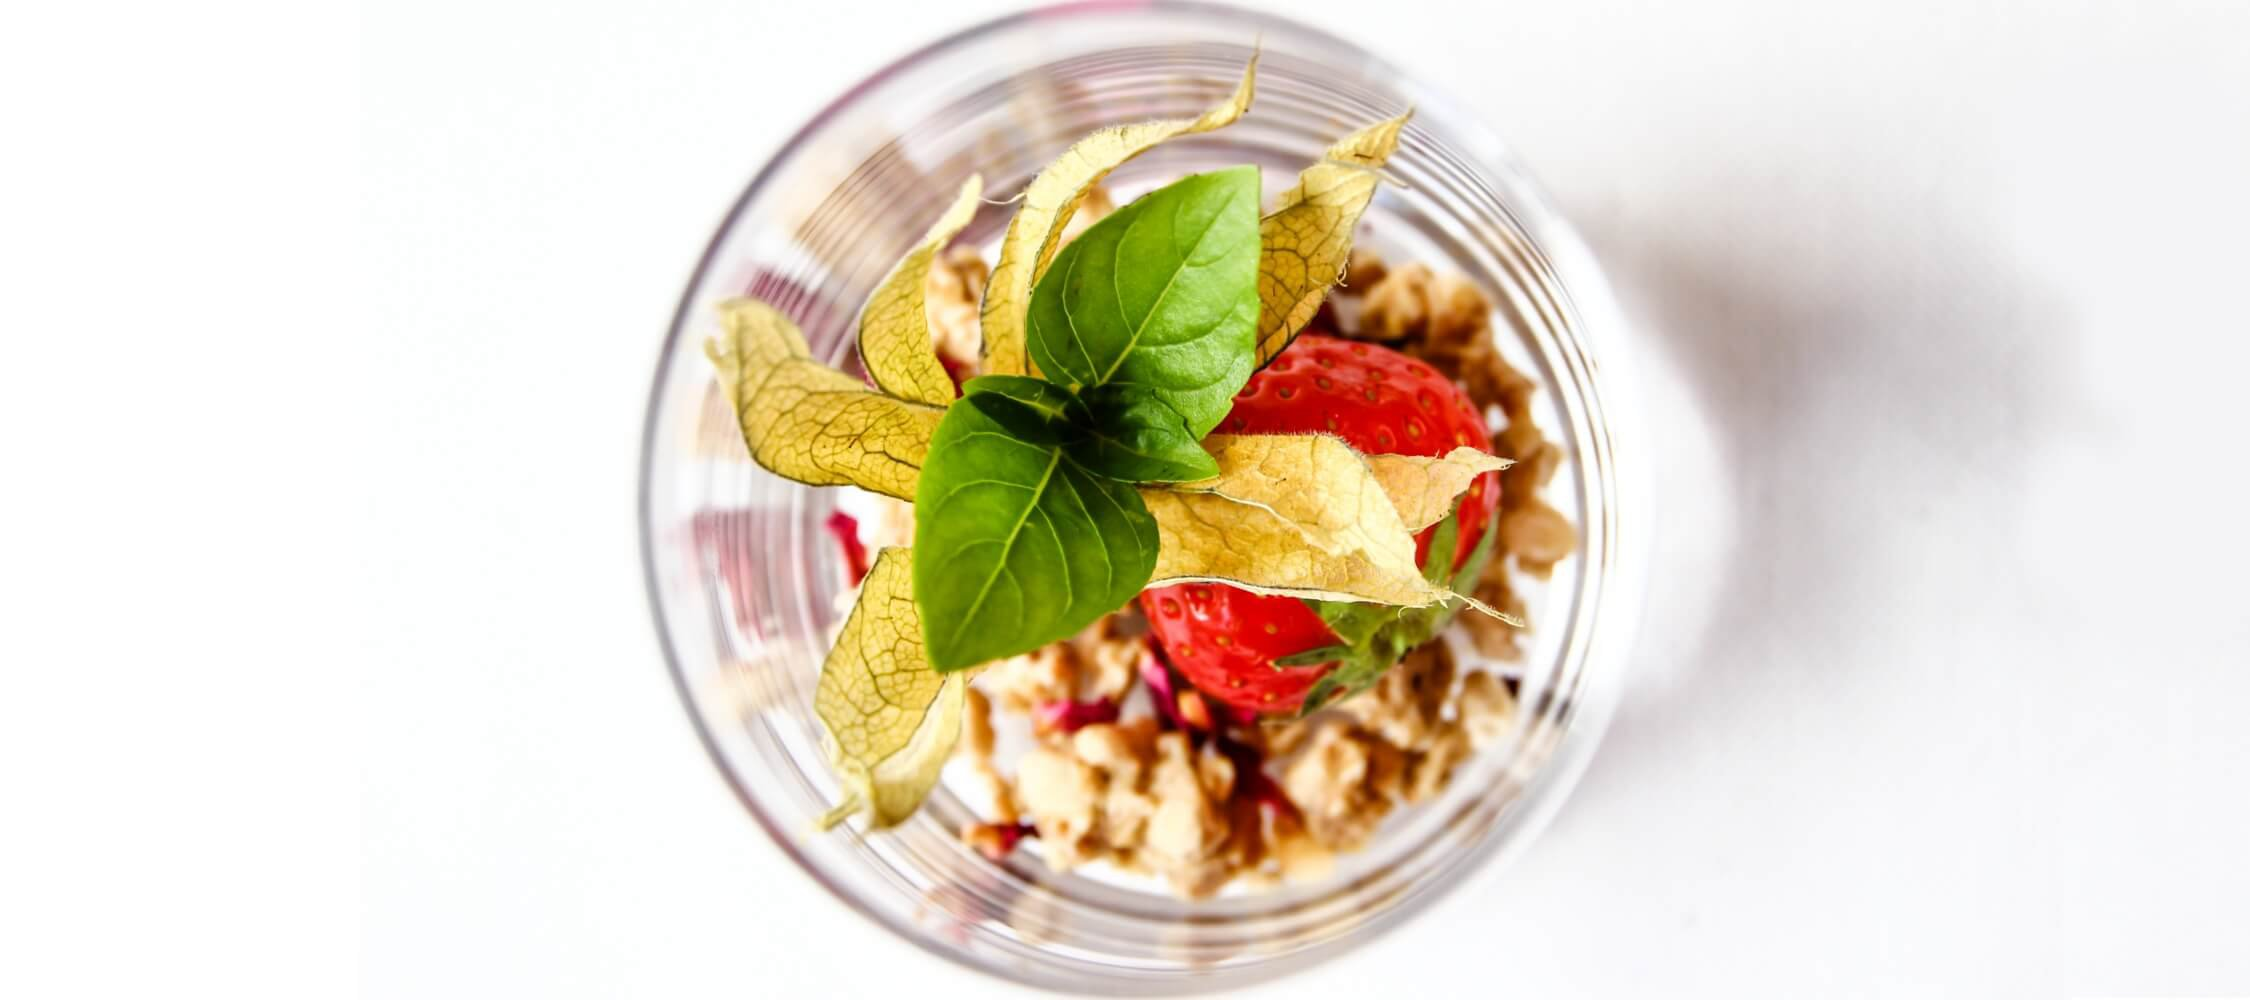 City_Hotel_Merano_Restaurant_Breakfast_Buffet_Fruehstueck_Essen_Cereals_Muesli_Sweet_Anguane_1144_2250x1000